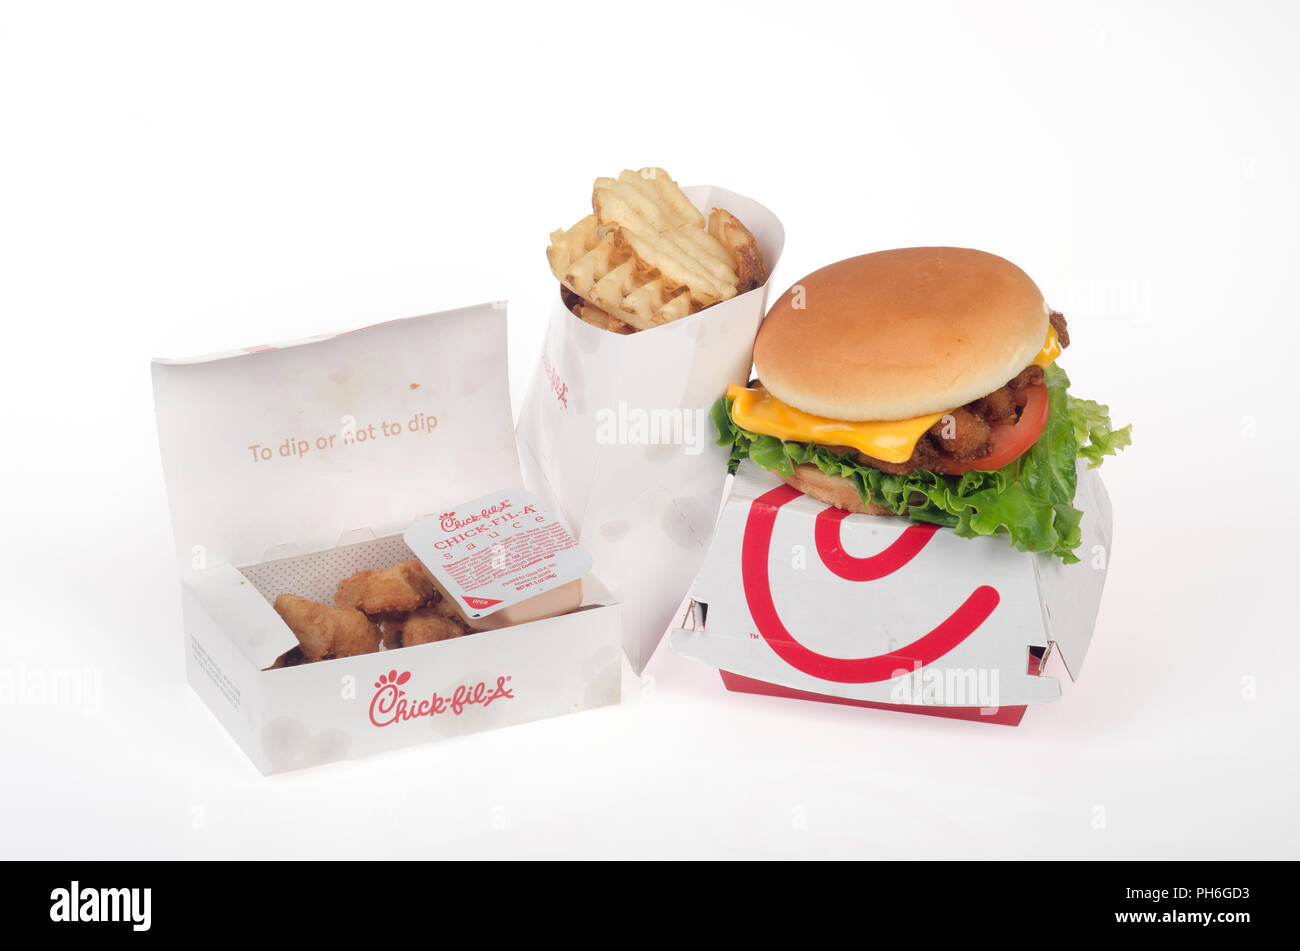 Chick-Fil-A Deluxe chicken sandwich with lettuce, tomato and